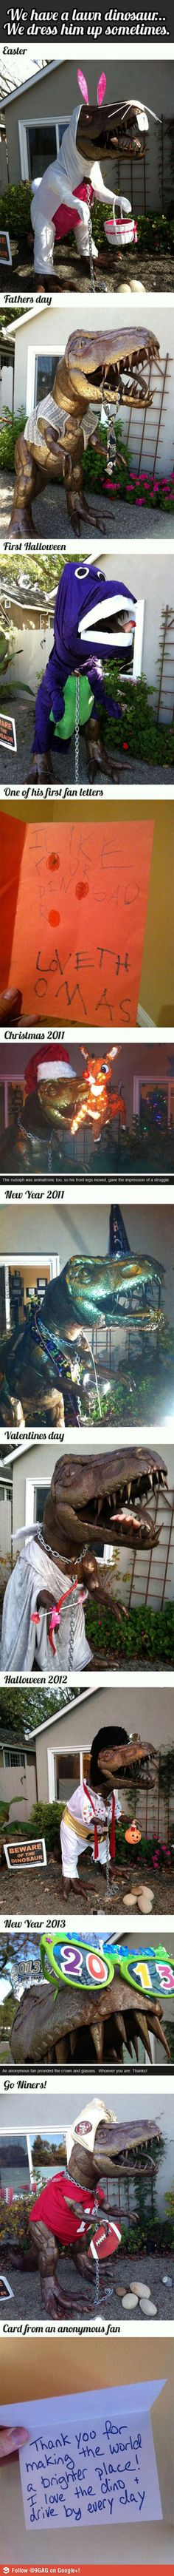 Lawn Dinosaur, finally found a good reason to get one! Shawnee Trading Post here I come!